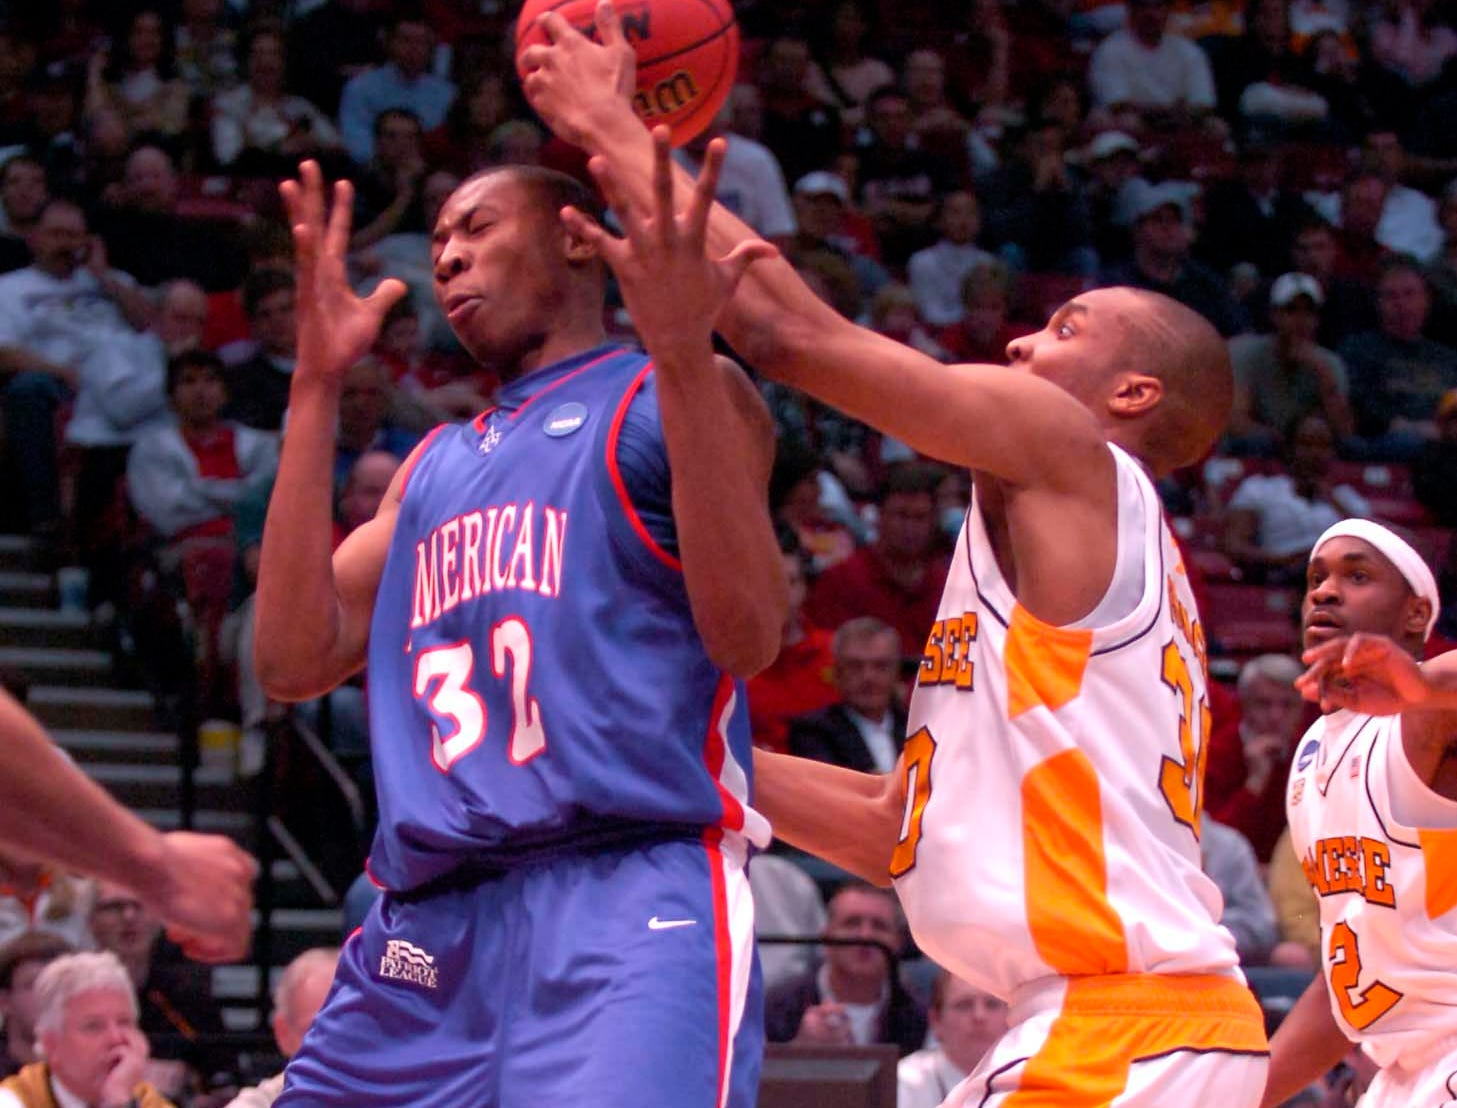 Tennessee's J.P. Prince knocks the ball away from American University's Cornelio Guibunda during first round competition of the 2008 NCAA Tournament in Birmingham on Friday. Tennessee won the game 72-57 and advance to play the winner of Butler vs. South Alabama.